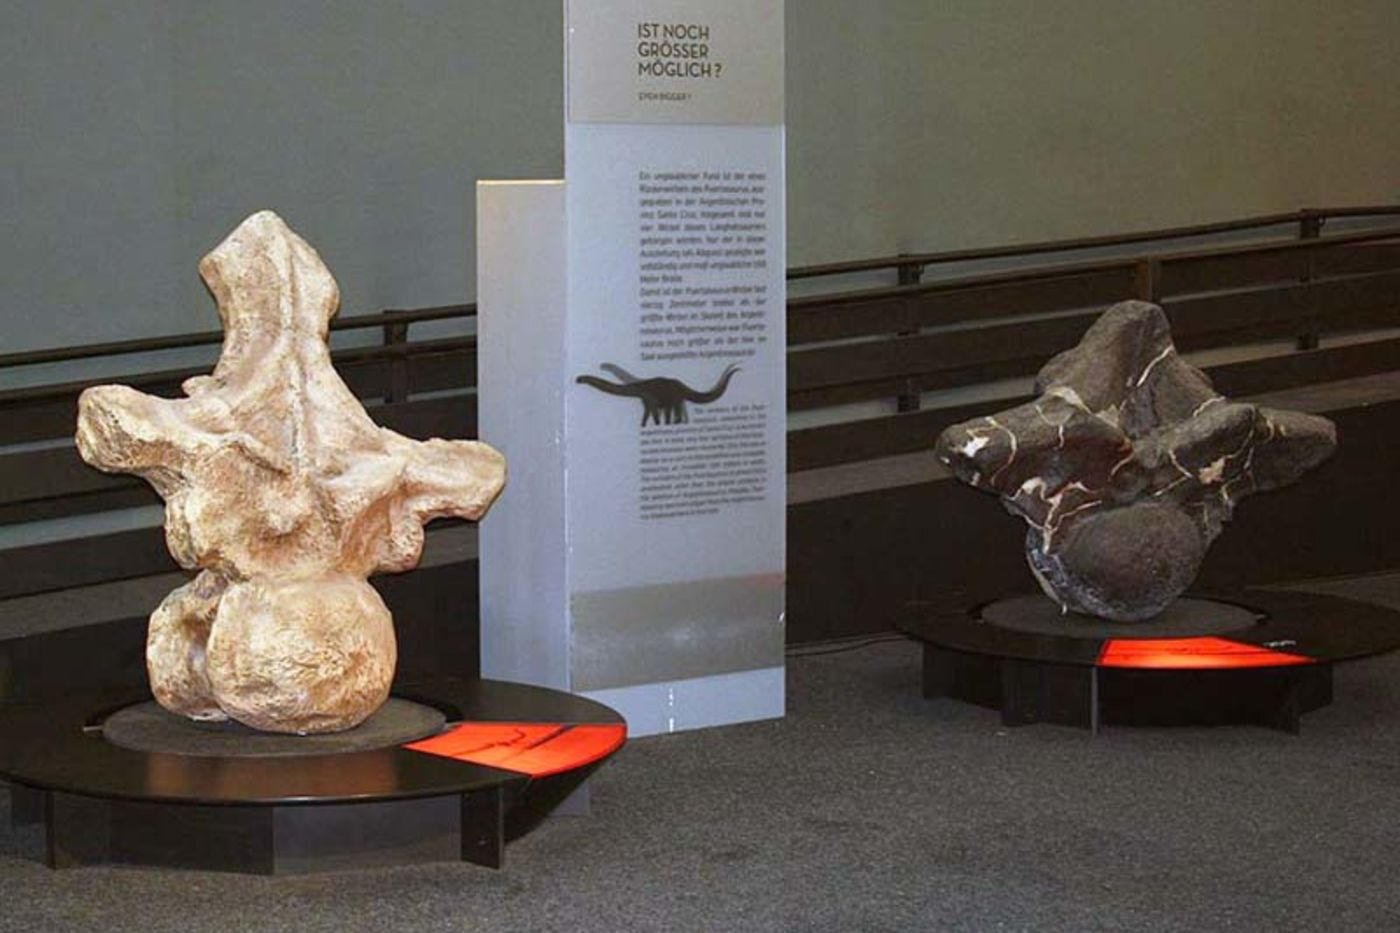 Two large dinosaur vertebrae side by side in a museum display. The one on the left is white in color and larger, and the smaller one on the right is a dark gray color.